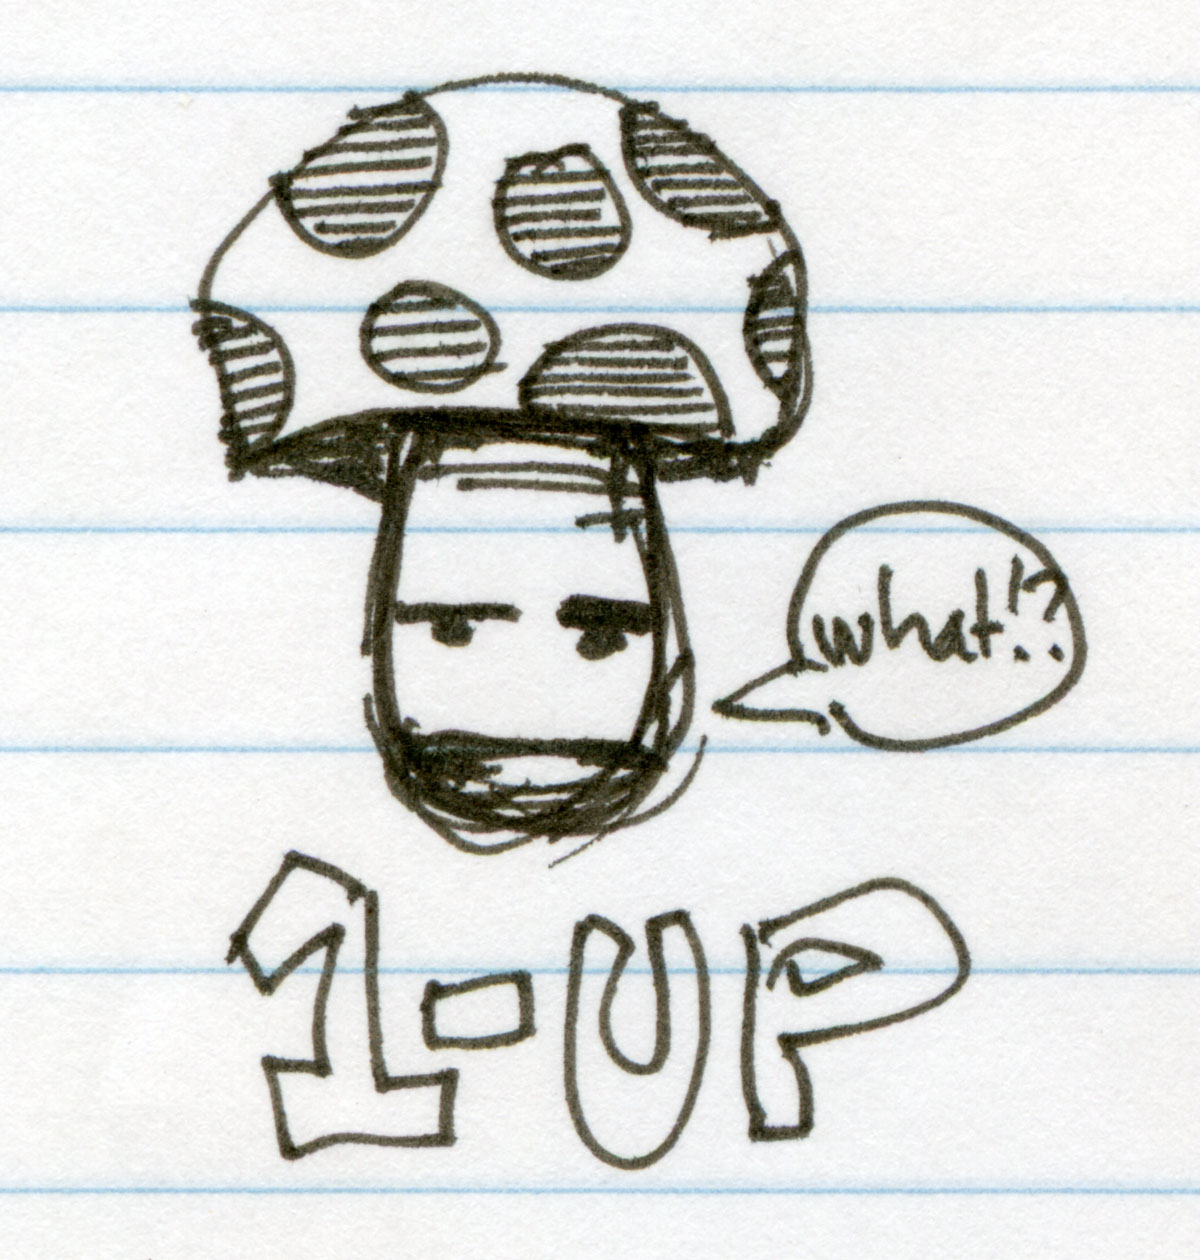 [1up_WHAT.jpg]